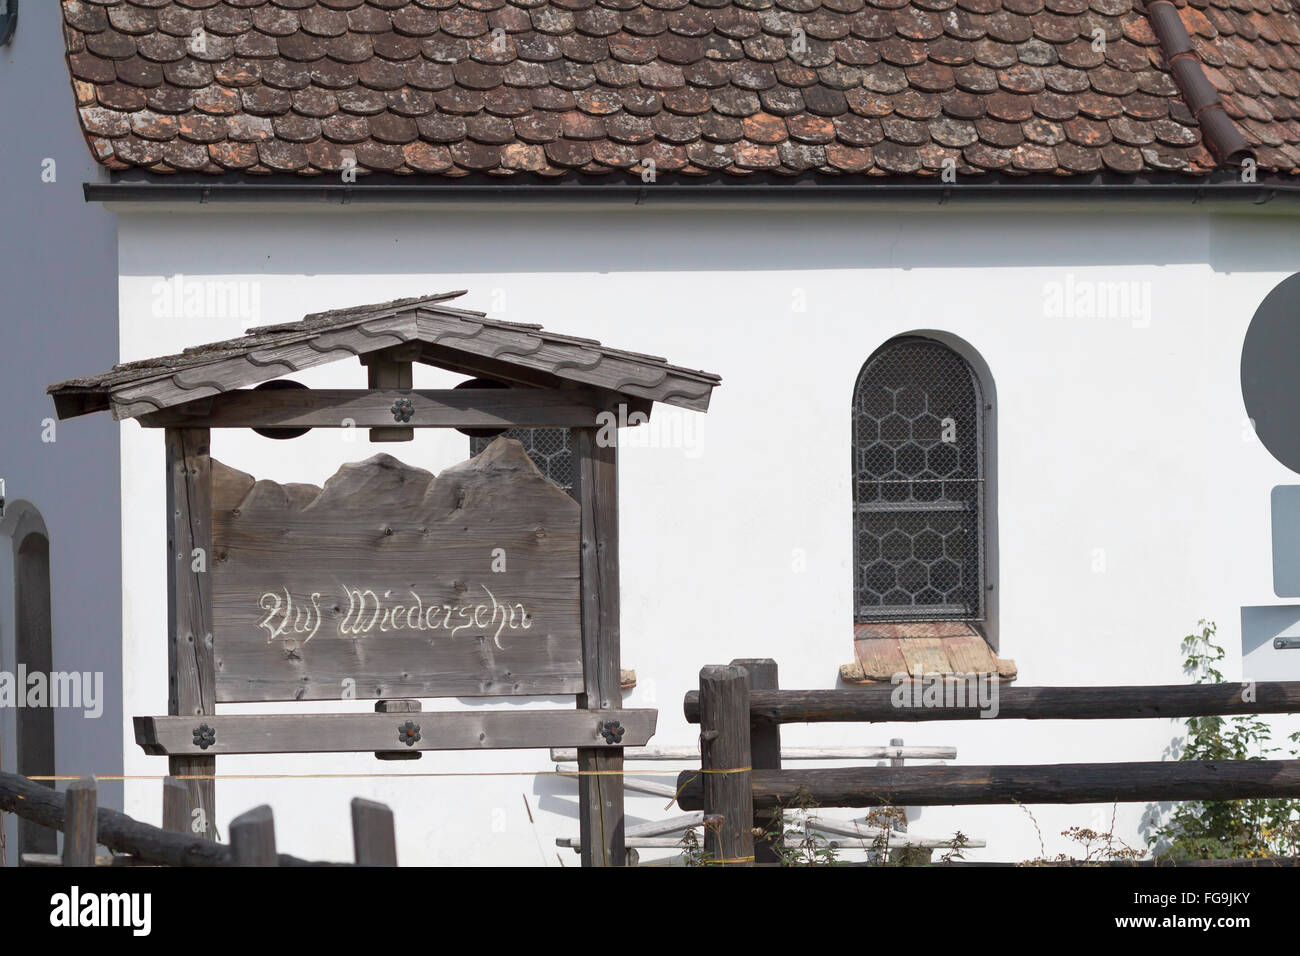 geography / travel, Germany, Bavaria, chapel at the Pilgrimage Church of Wies, 'Auf Wiedersehen' signboard, - Stock Image